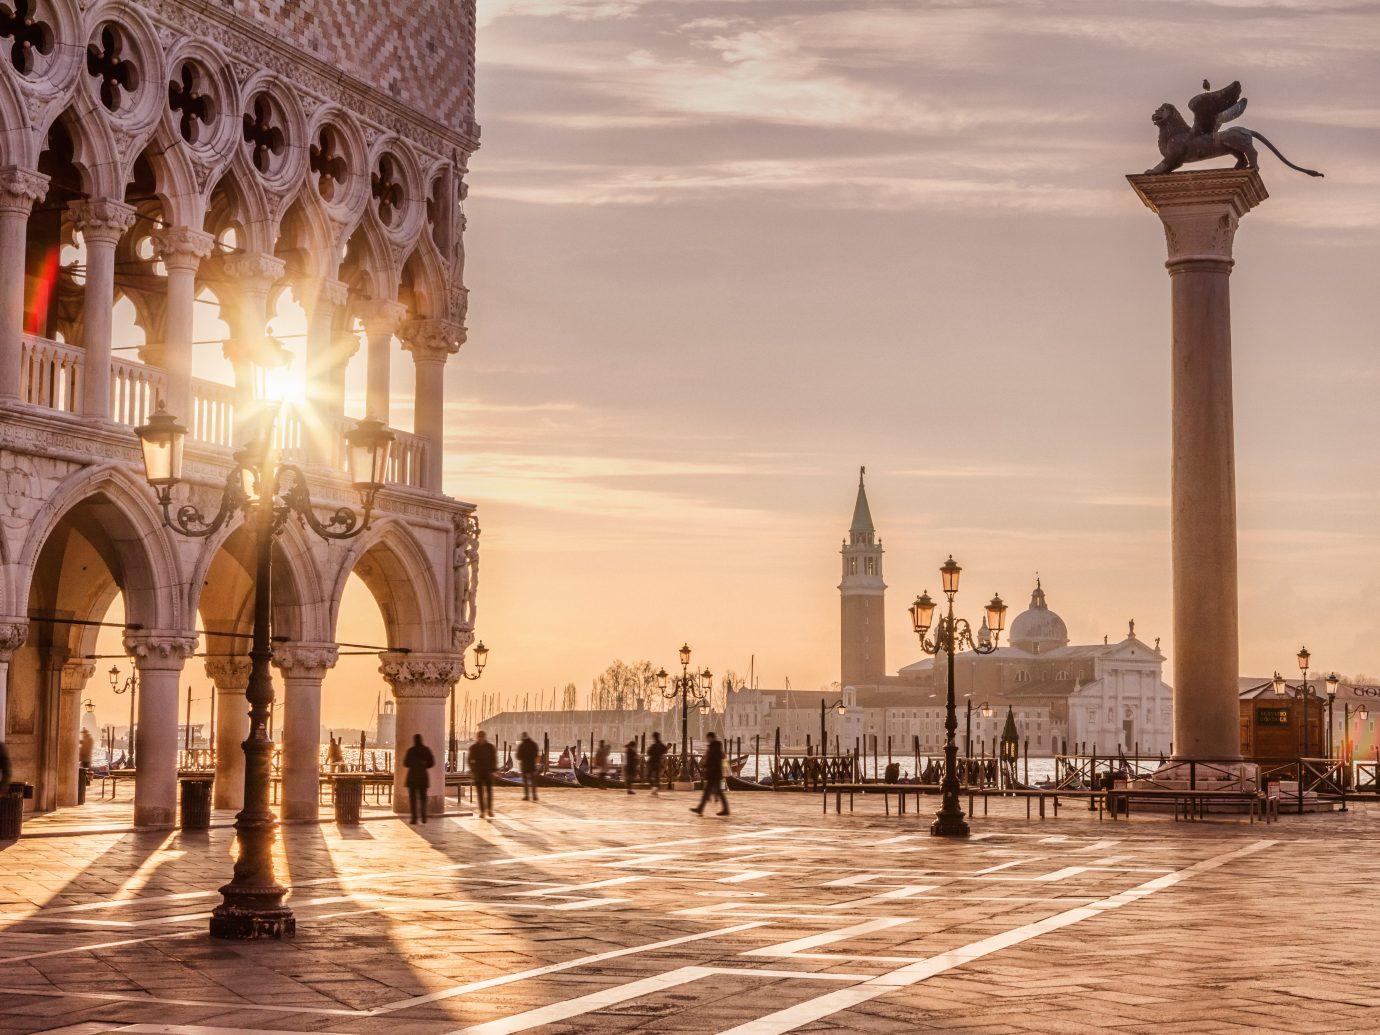 Venice is a city in northeastern Italy and the capital of the Veneto region.